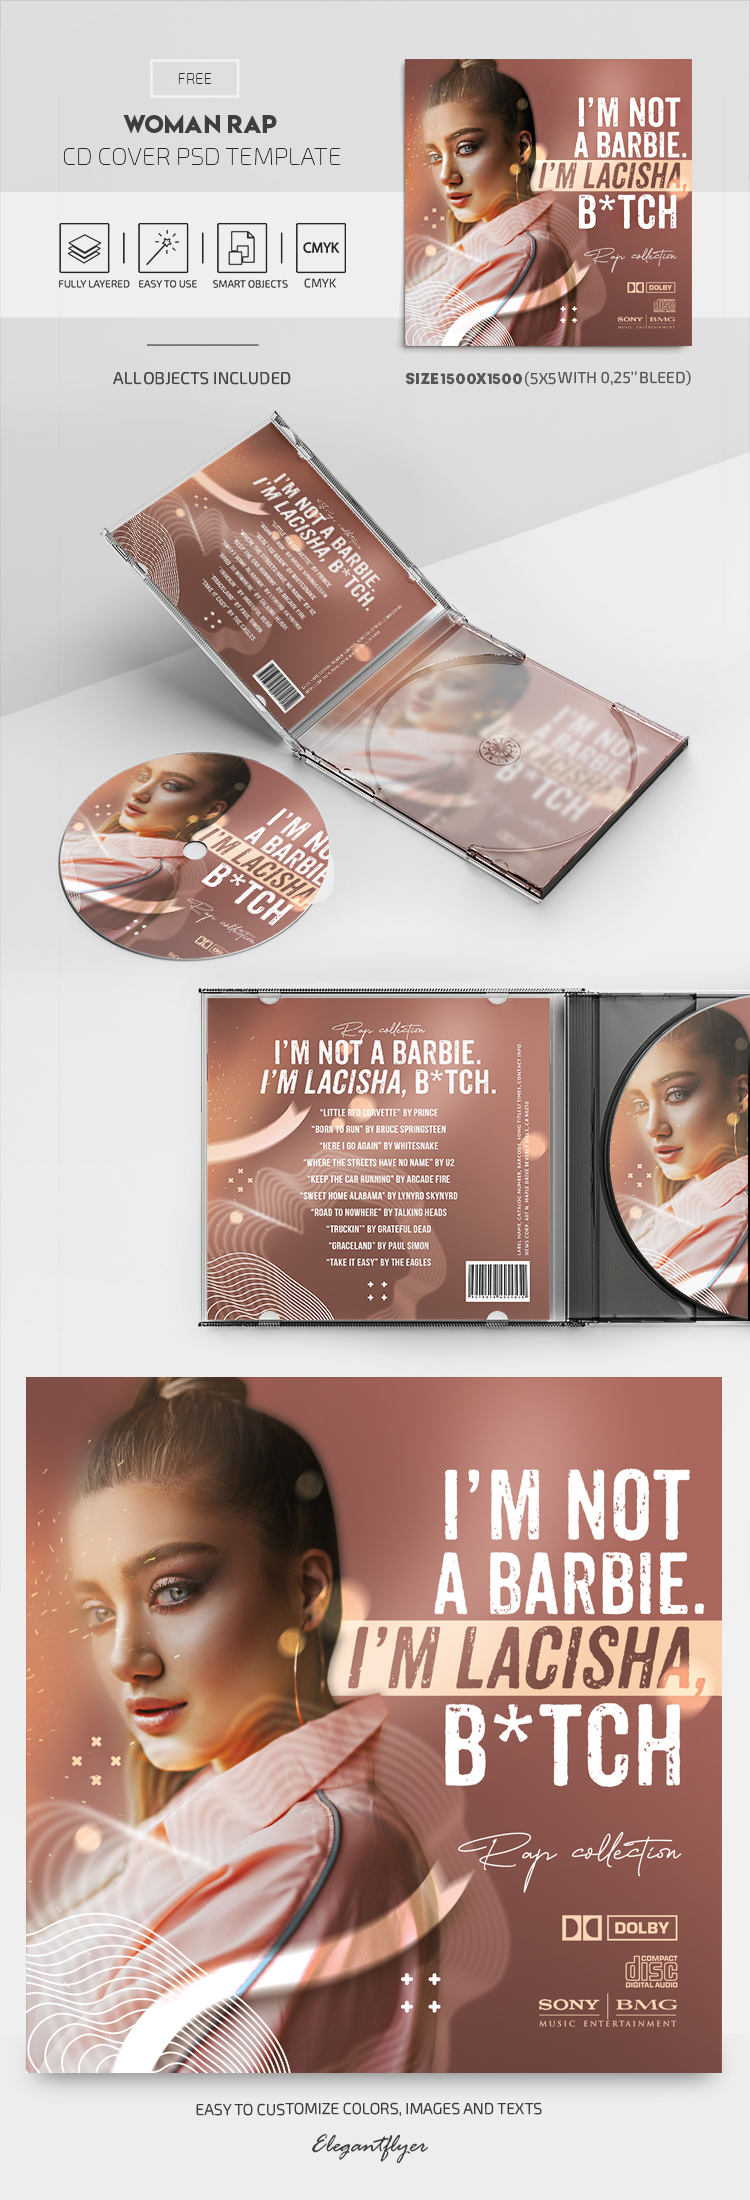 Woman Rap – Free CD Cover PSD Template